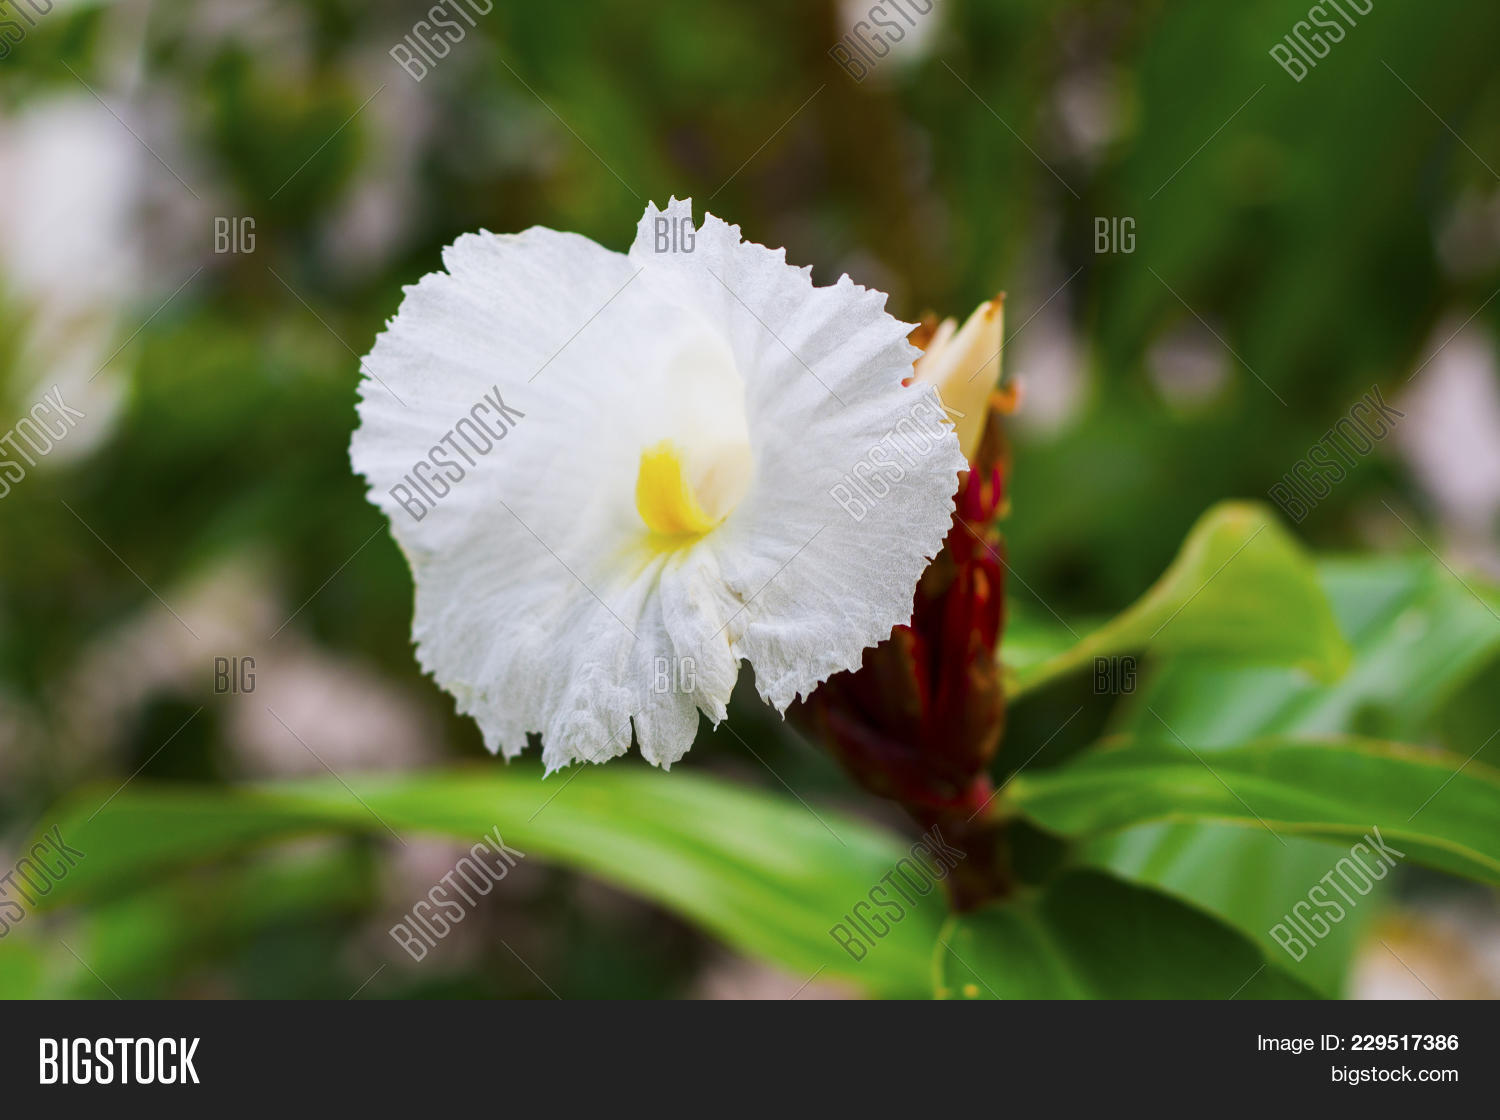 White Tropical Flower Image Photo Free Trial Bigstock